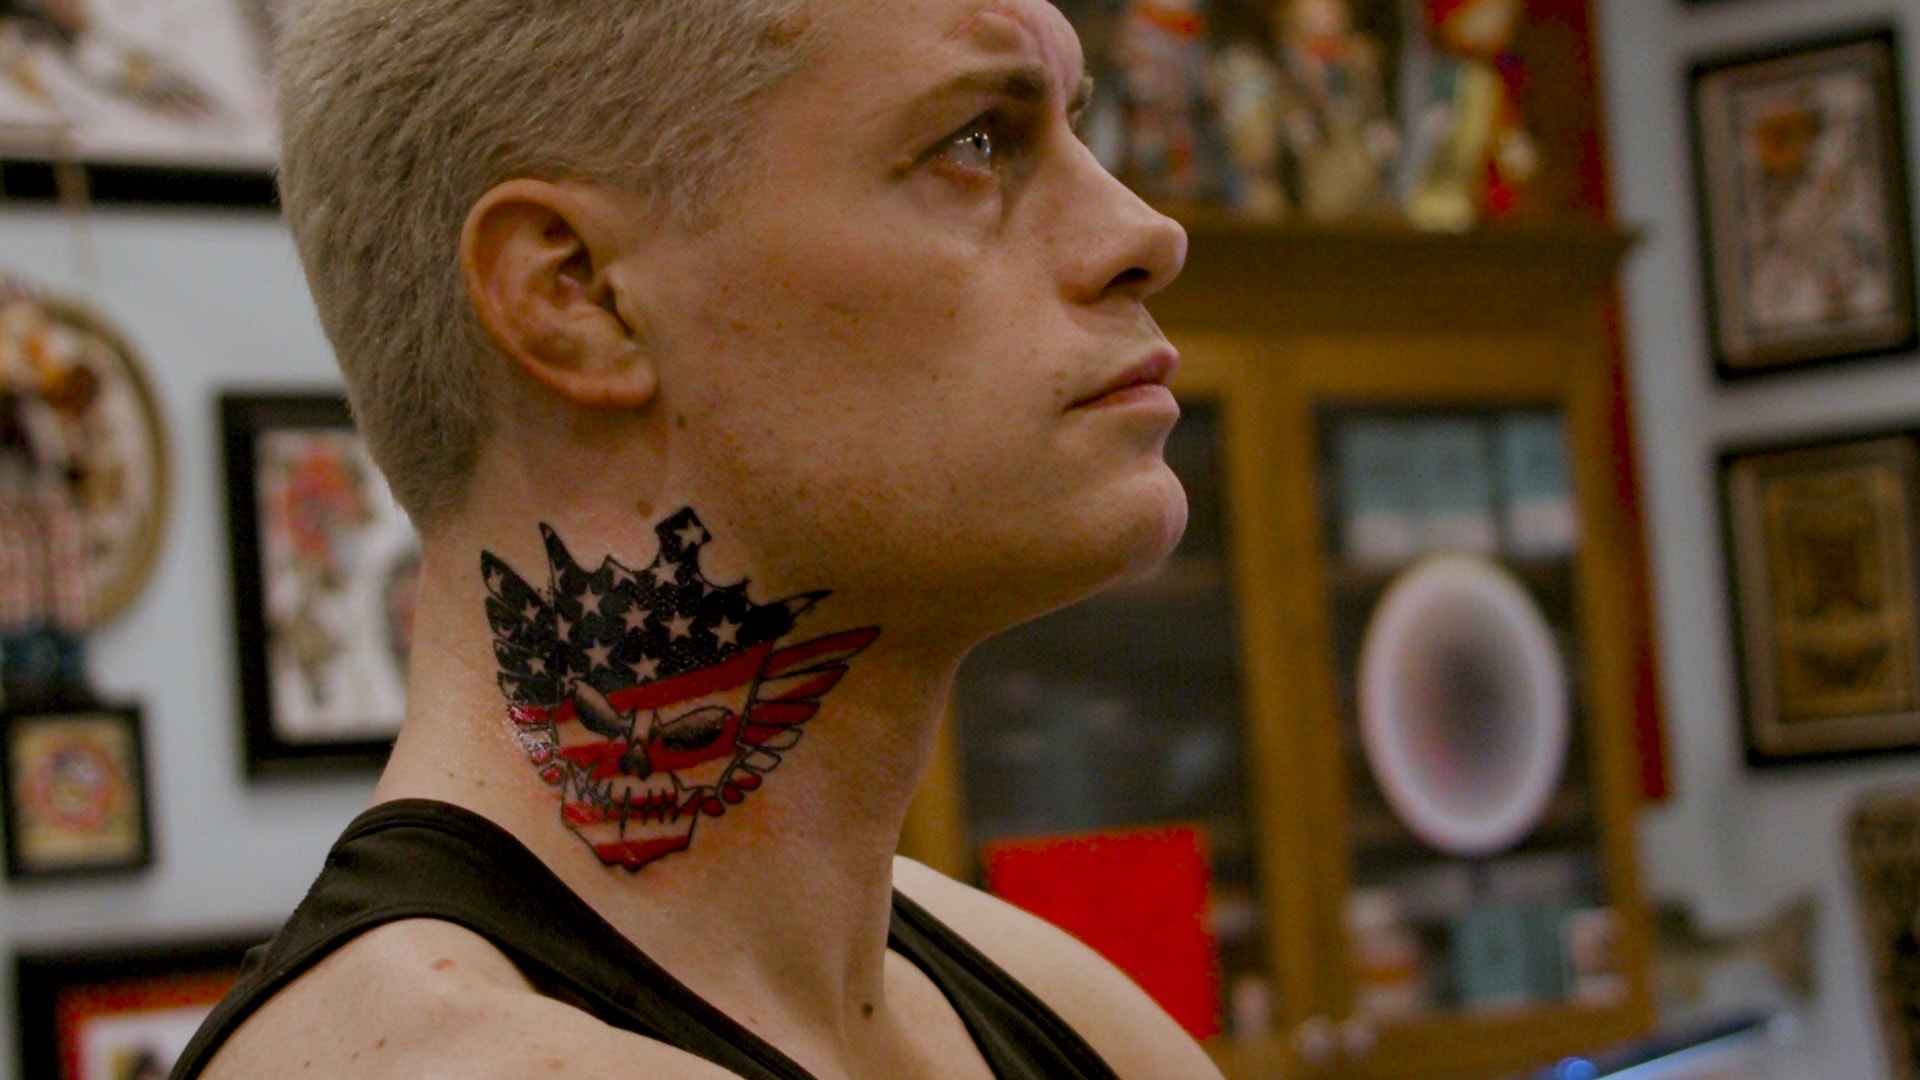 The biggest news out of AEW Revolution is Cody's neck tattoo